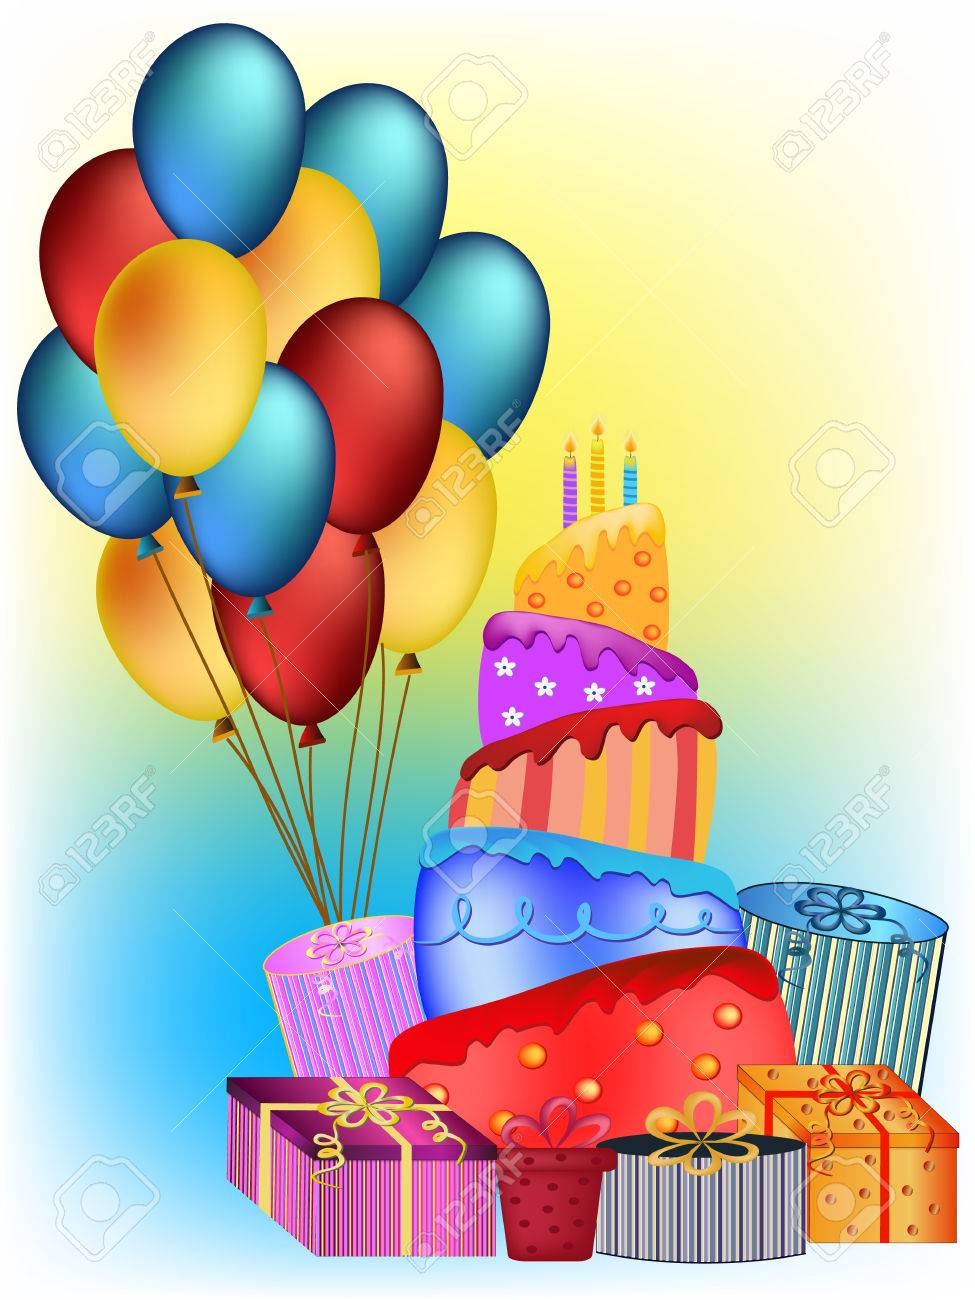 Colorful Happy Birthday Cake Balloon And Present Illustration Stock Vector